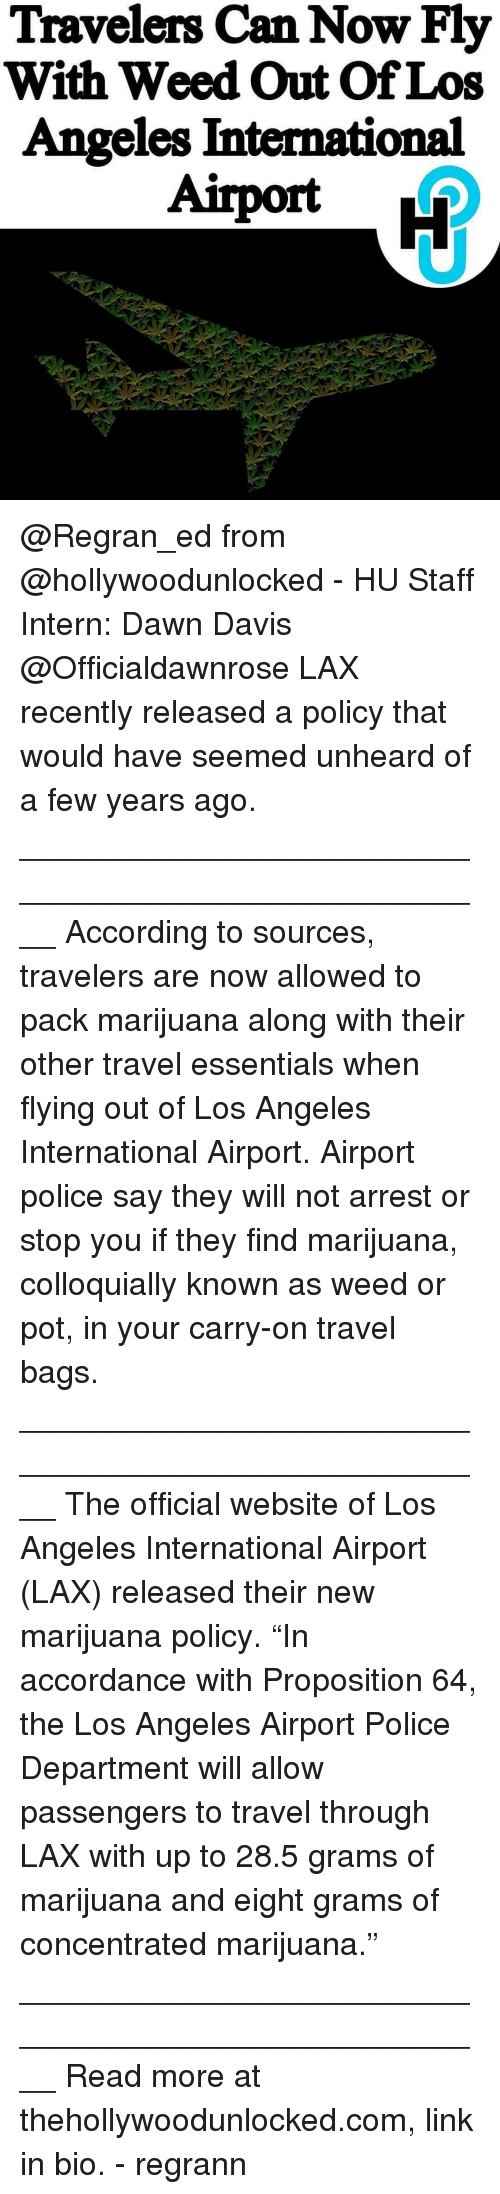 "accordance: Travelers Can Now Fly  With Weed Out Of Los  Angeles International @Regran_ed from @hollywoodunlocked - HU Staff Intern: Dawn Davis @Officialdawnrose LAX recently released a policy that would have seemed unheard of a few years ago. ____________________________________________________ According to sources, travelers are now allowed to pack marijuana along with their other travel essentials when flying out of Los Angeles International Airport. Airport police say they will not arrest or stop you if they find marijuana, colloquially known as weed or pot, in your carry-on travel bags. ____________________________________________________ The official website of Los Angeles International Airport (LAX) released their new marijuana policy. ""In accordance with Proposition 64, the Los Angeles Airport Police Department will allow passengers to travel through LAX with up to 28.5 grams of marijuana and eight grams of concentrated marijuana."" ____________________________________________________ Read more at thehollywoodunlocked.com, link in bio. - regrann"